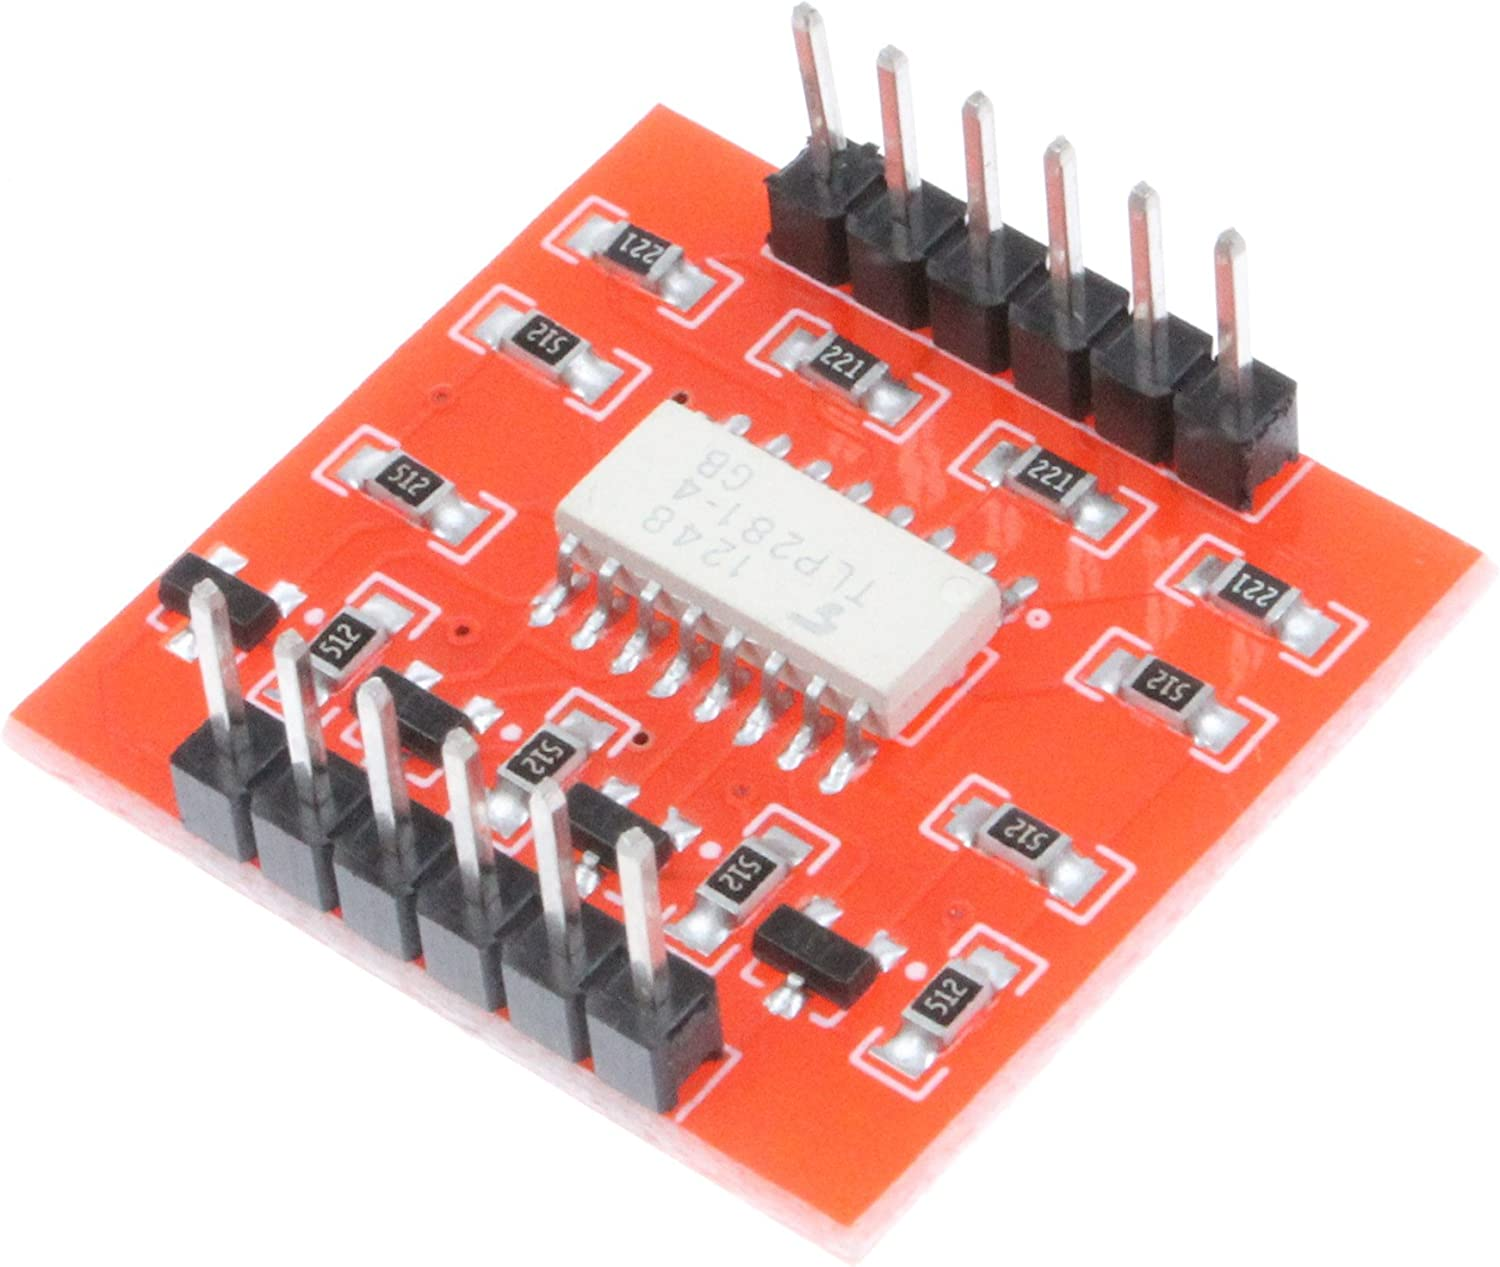 Tlp281 4-Channel Opto-Isolator IC Module Arduino Low /& High Level Expansion Board